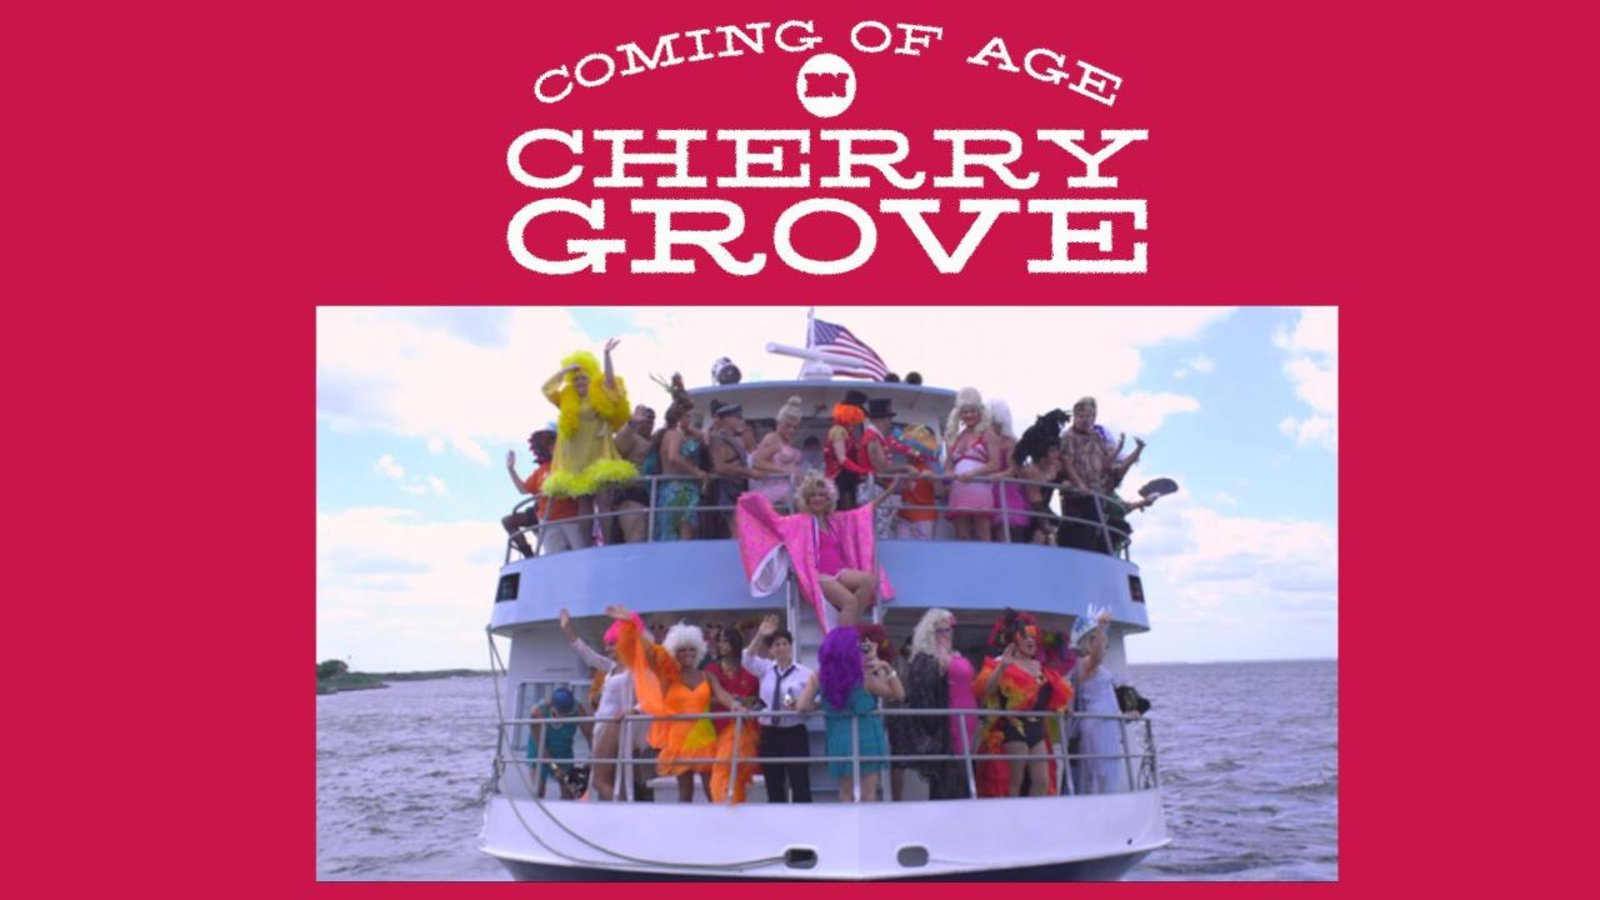 Coming of Age in Cherry Grove - The History of the First LGBTQ Community in the U.S.